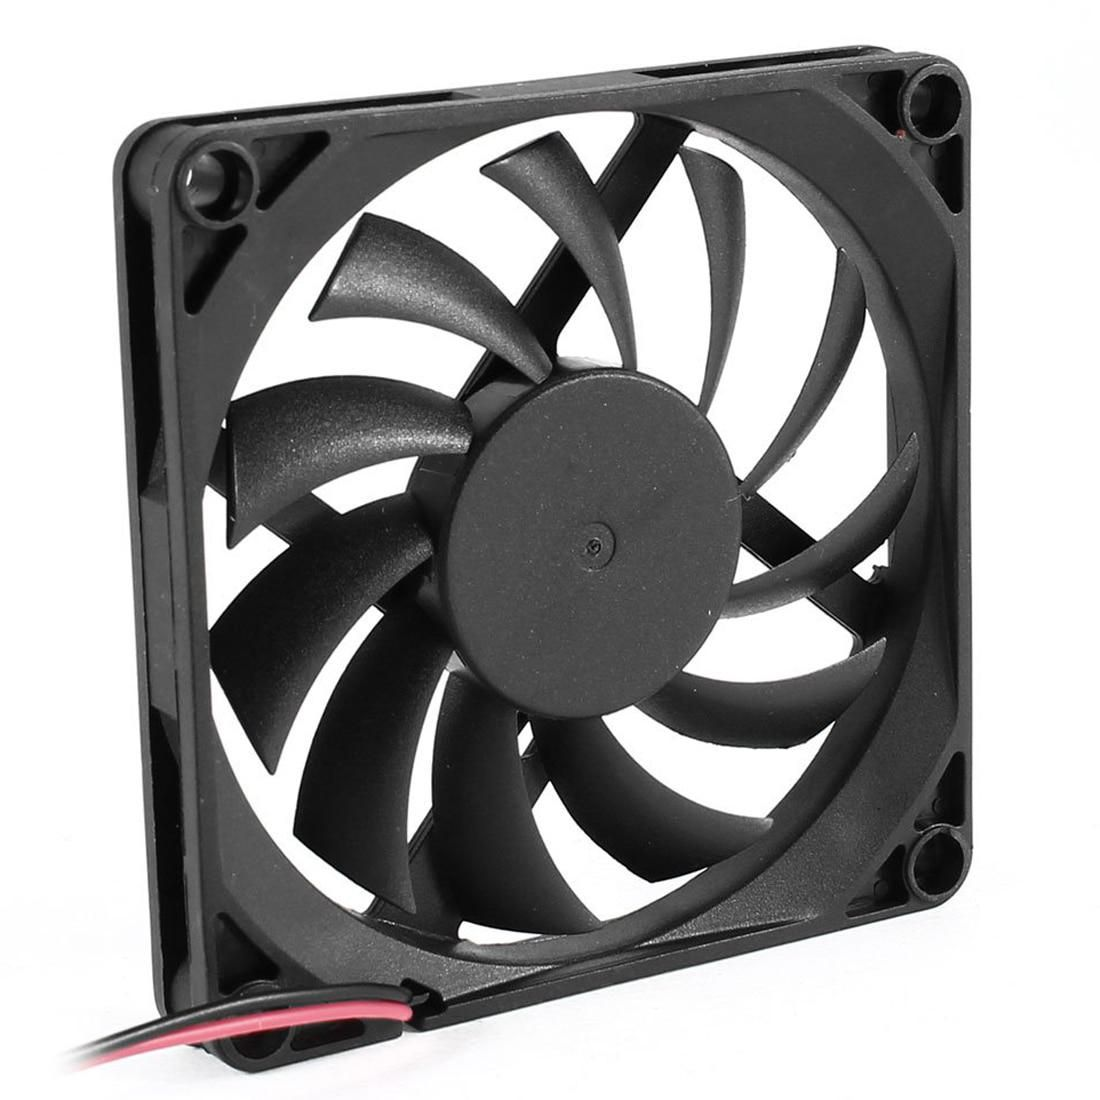 Hot 80mm 2 Pin Connector Cooling Fan For Computer Case Cpu Cooler